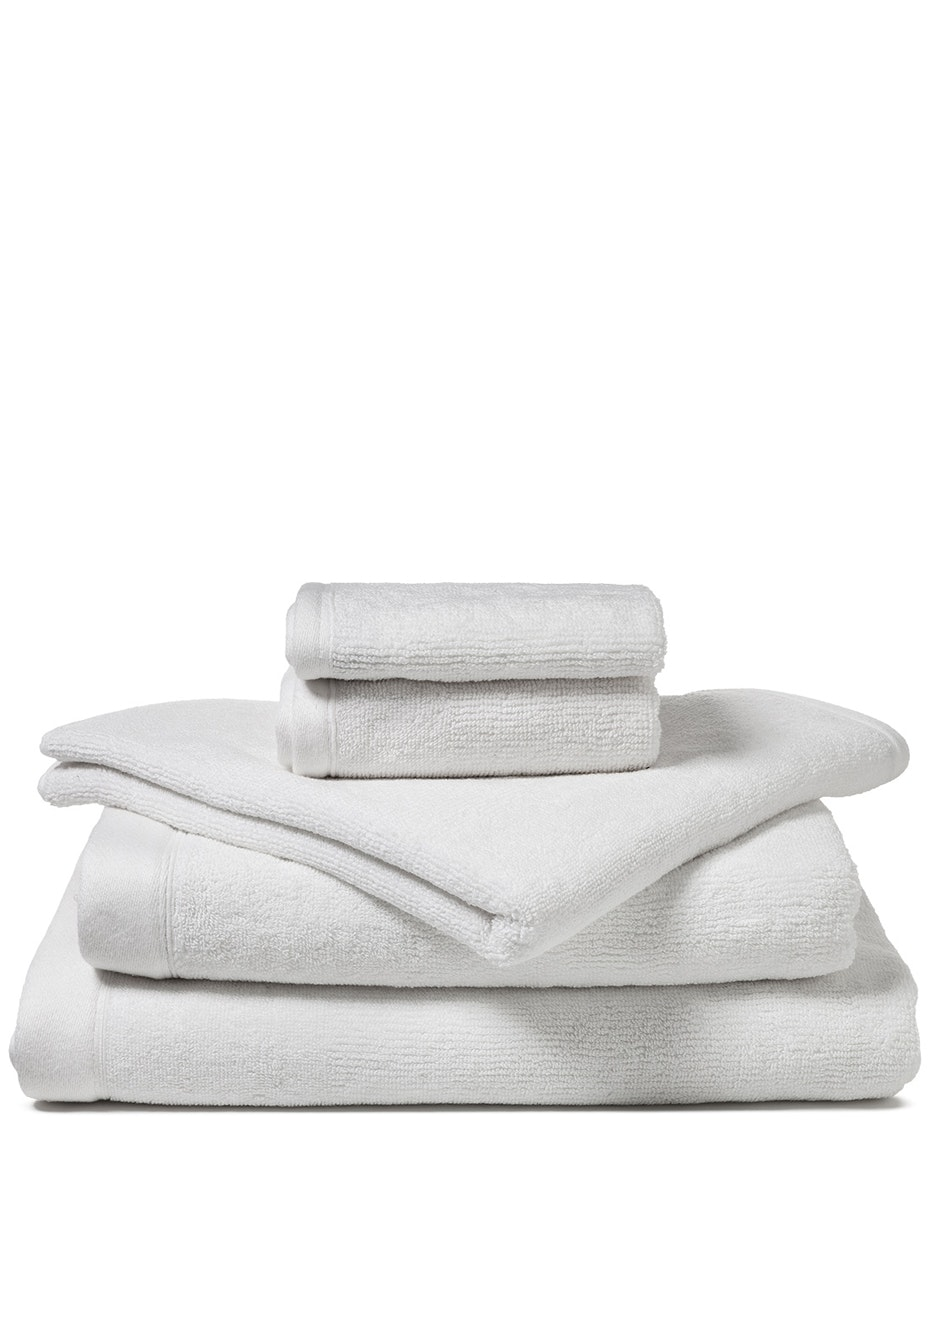 Canningvale - Corduroy Rib Bath Sheet White